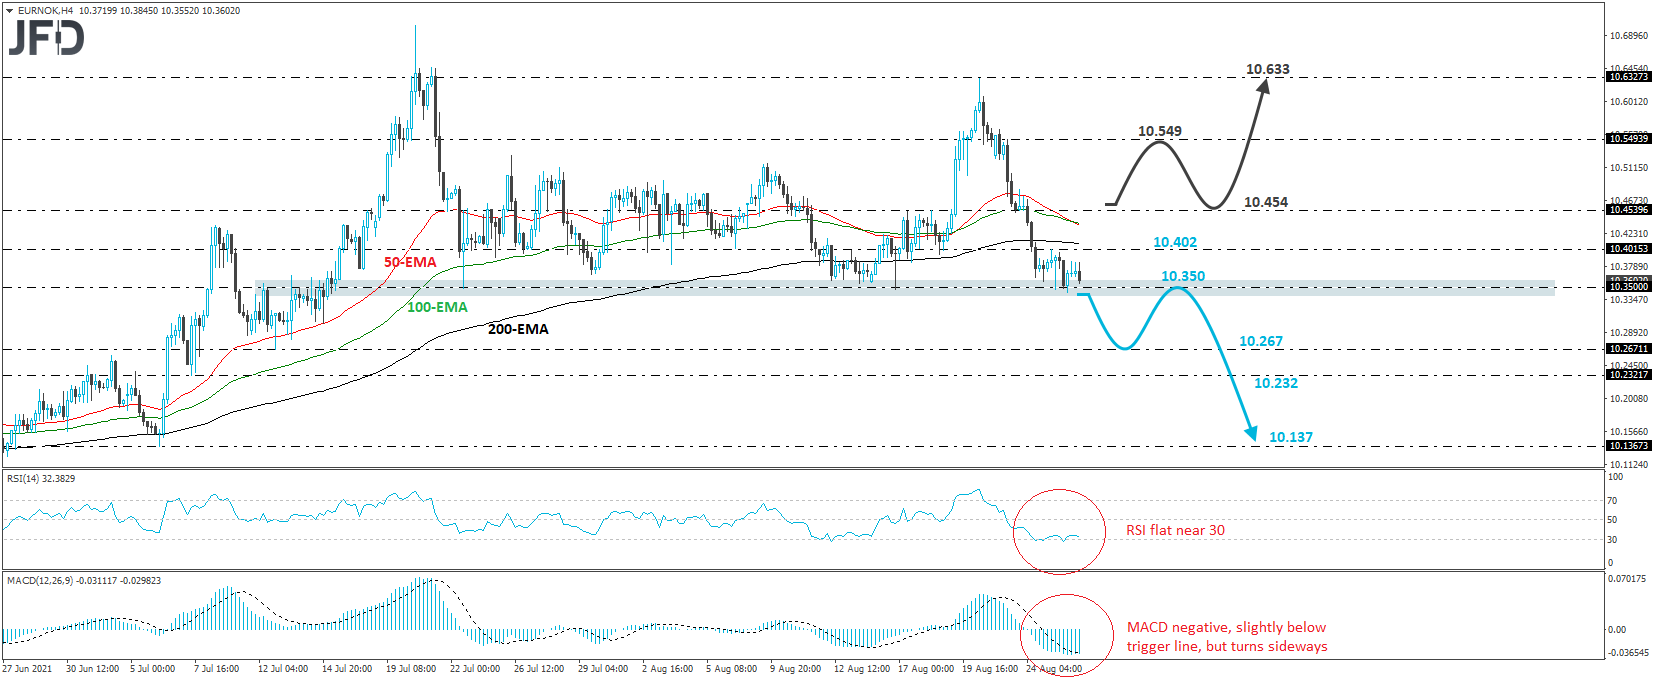 Will EUR/NOK Fall Below The Key Support Of 10.350 Soon?